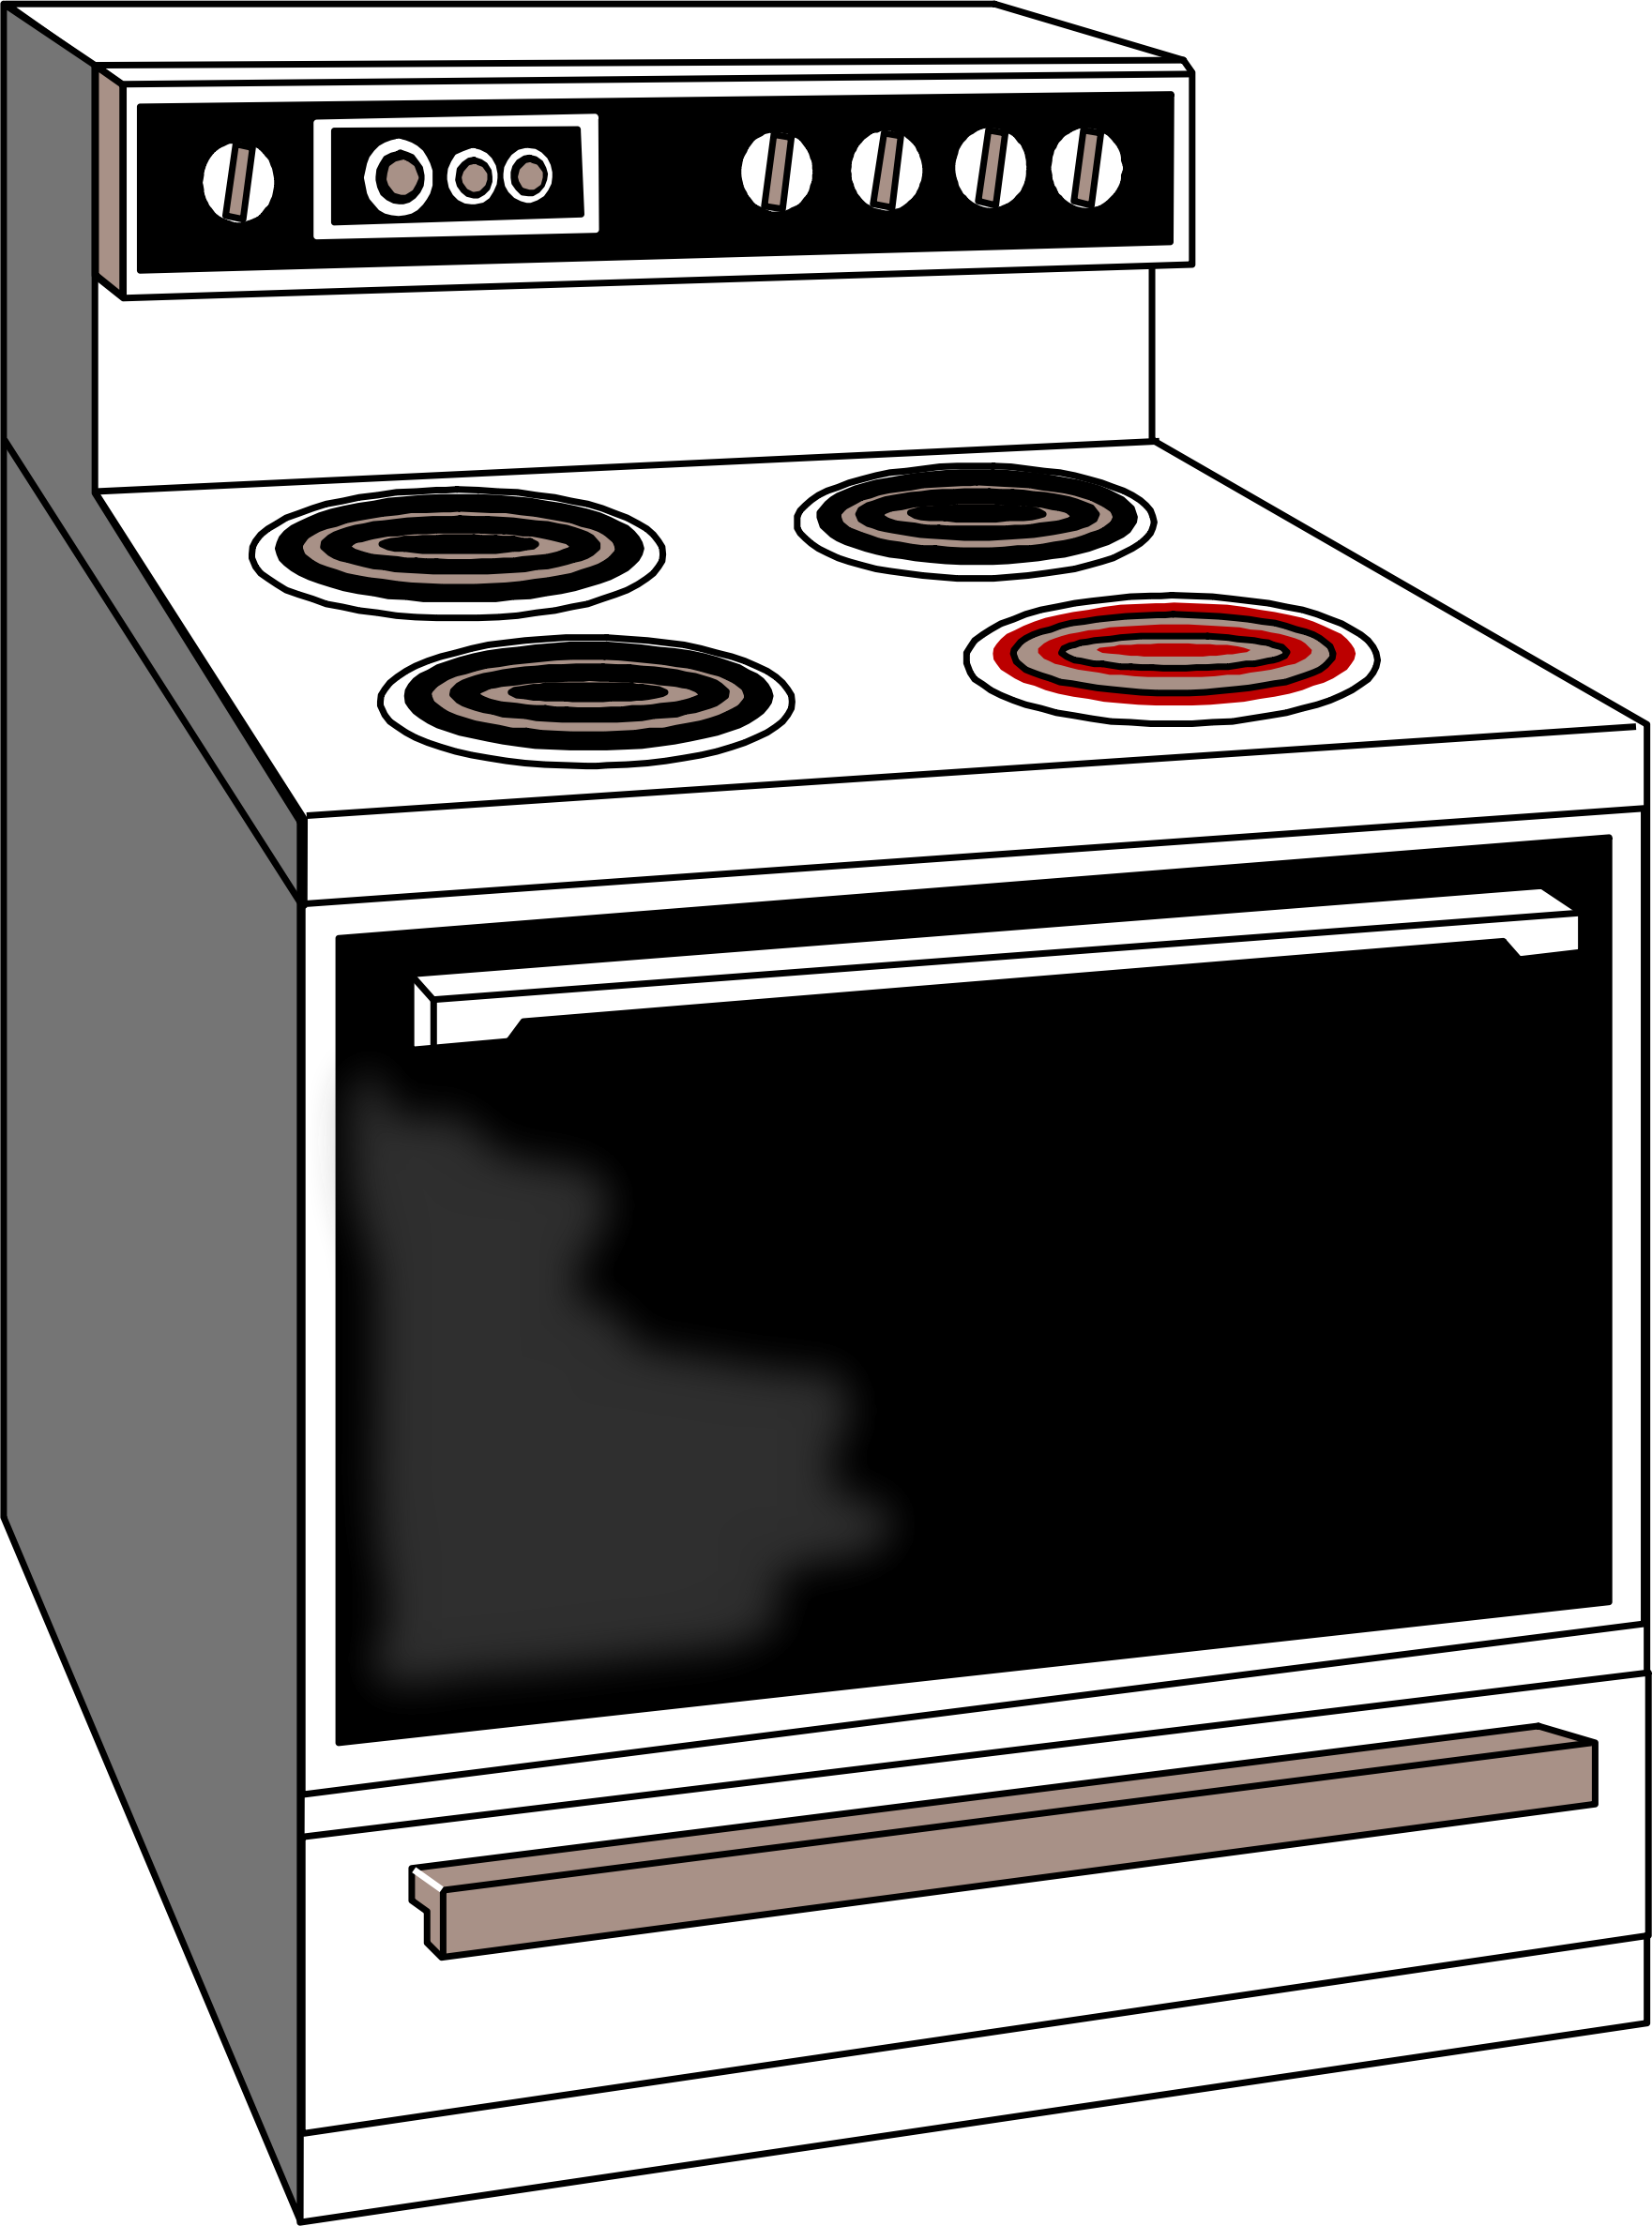 Stove big image png. Oven clipart appliance